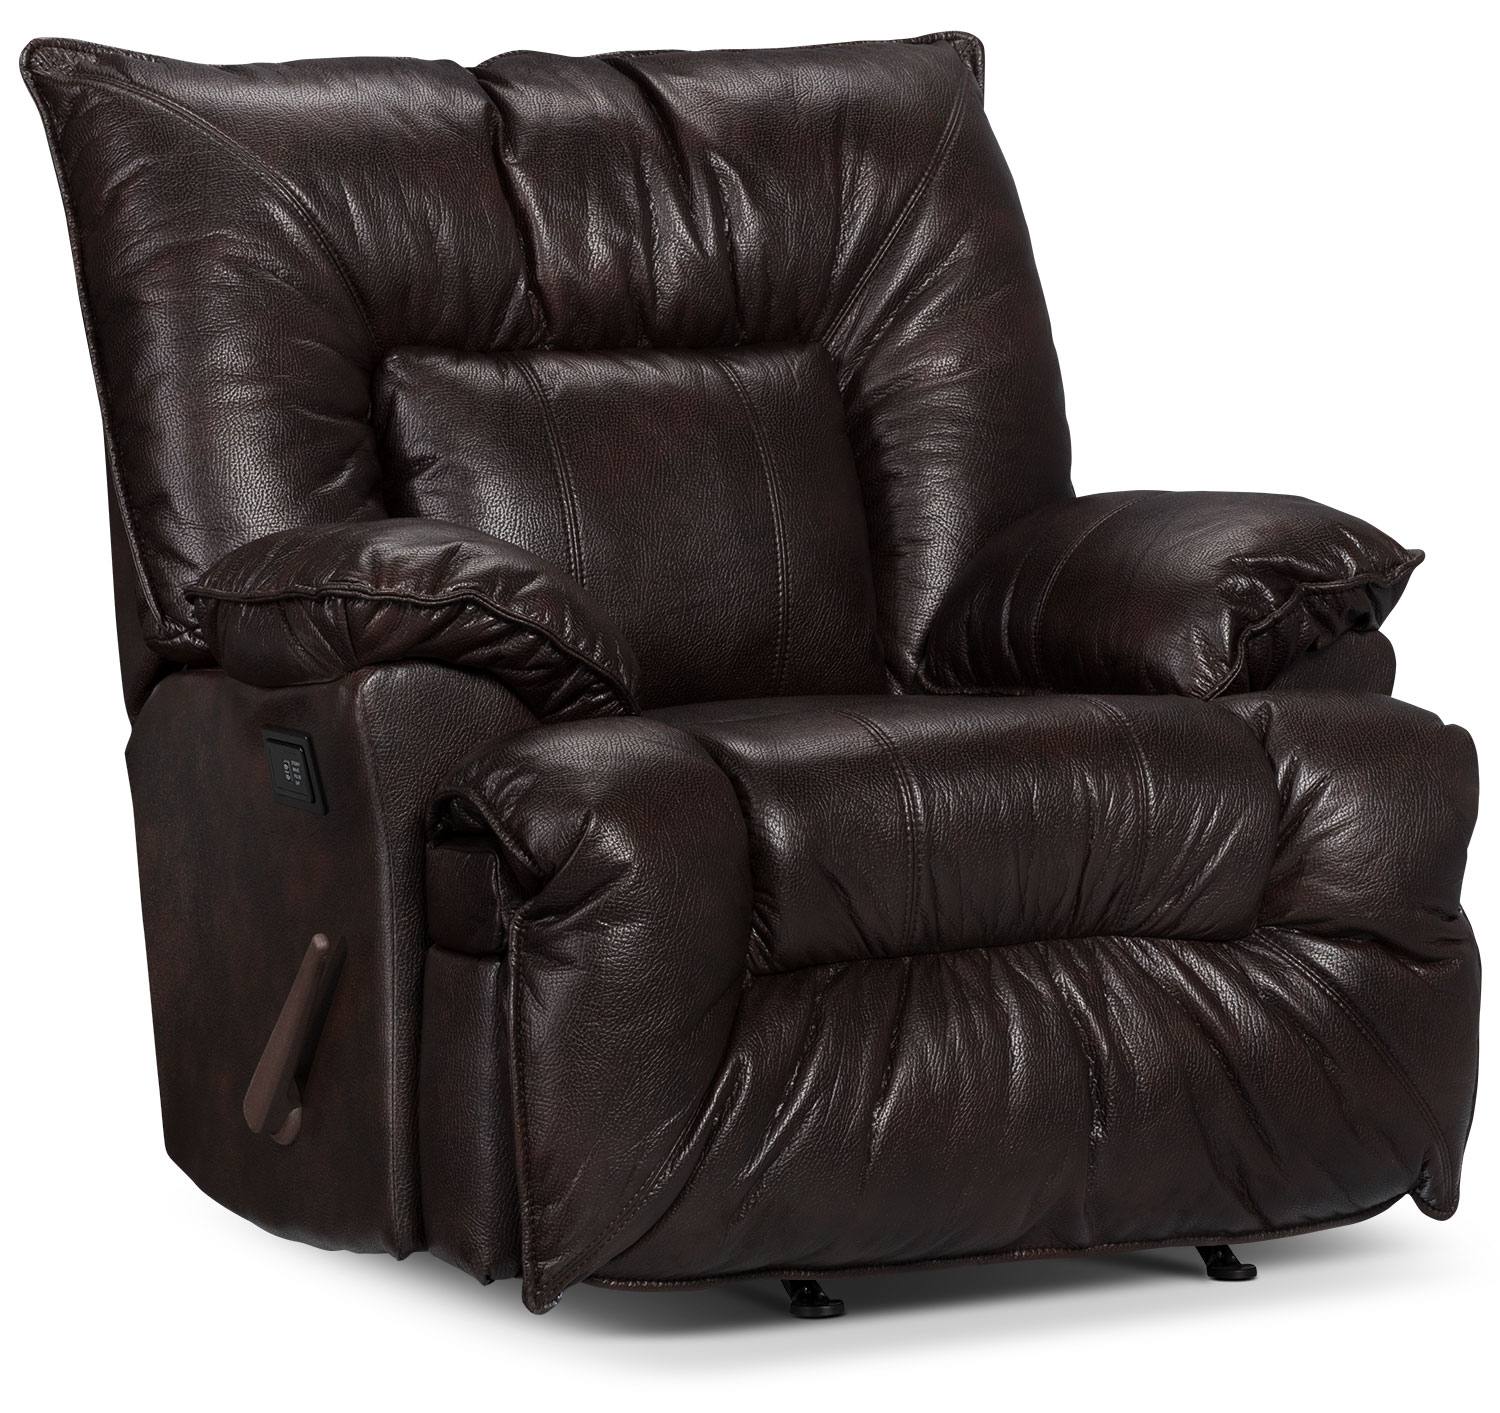 Living Room Furniture - Designed2B Recliner 7726 Leather-Look Fabric Massage Chair - Java